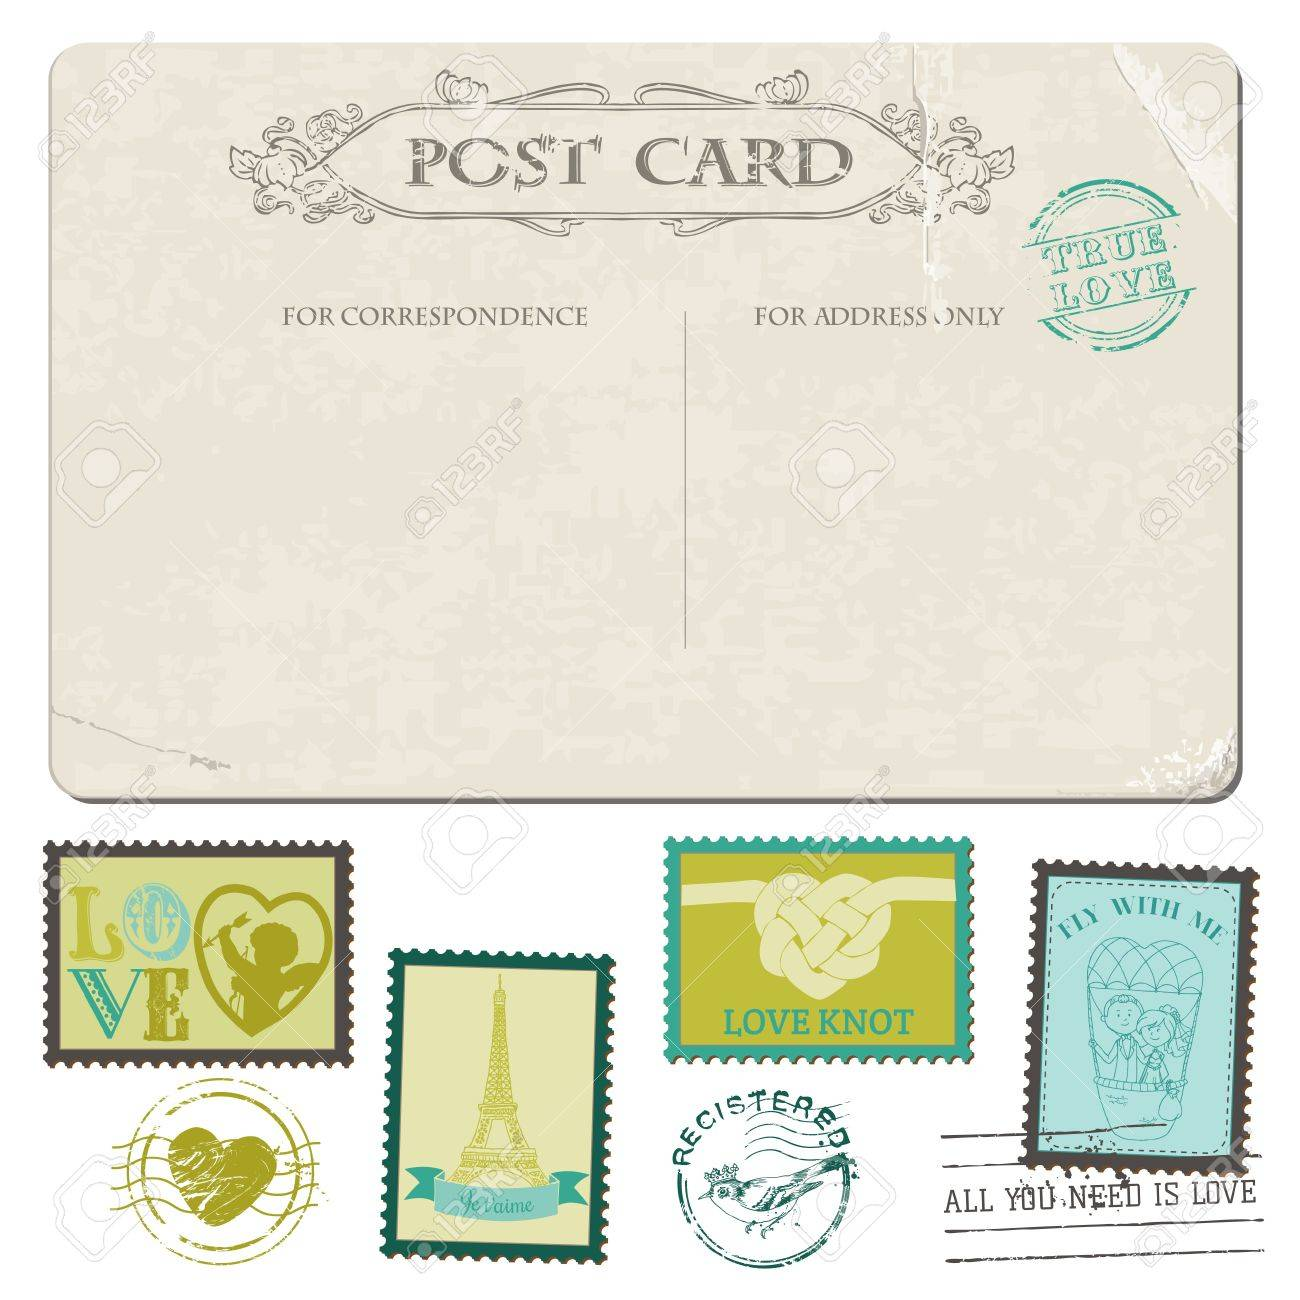 Vintage Postcard And Postage Stamps For Wedding Design